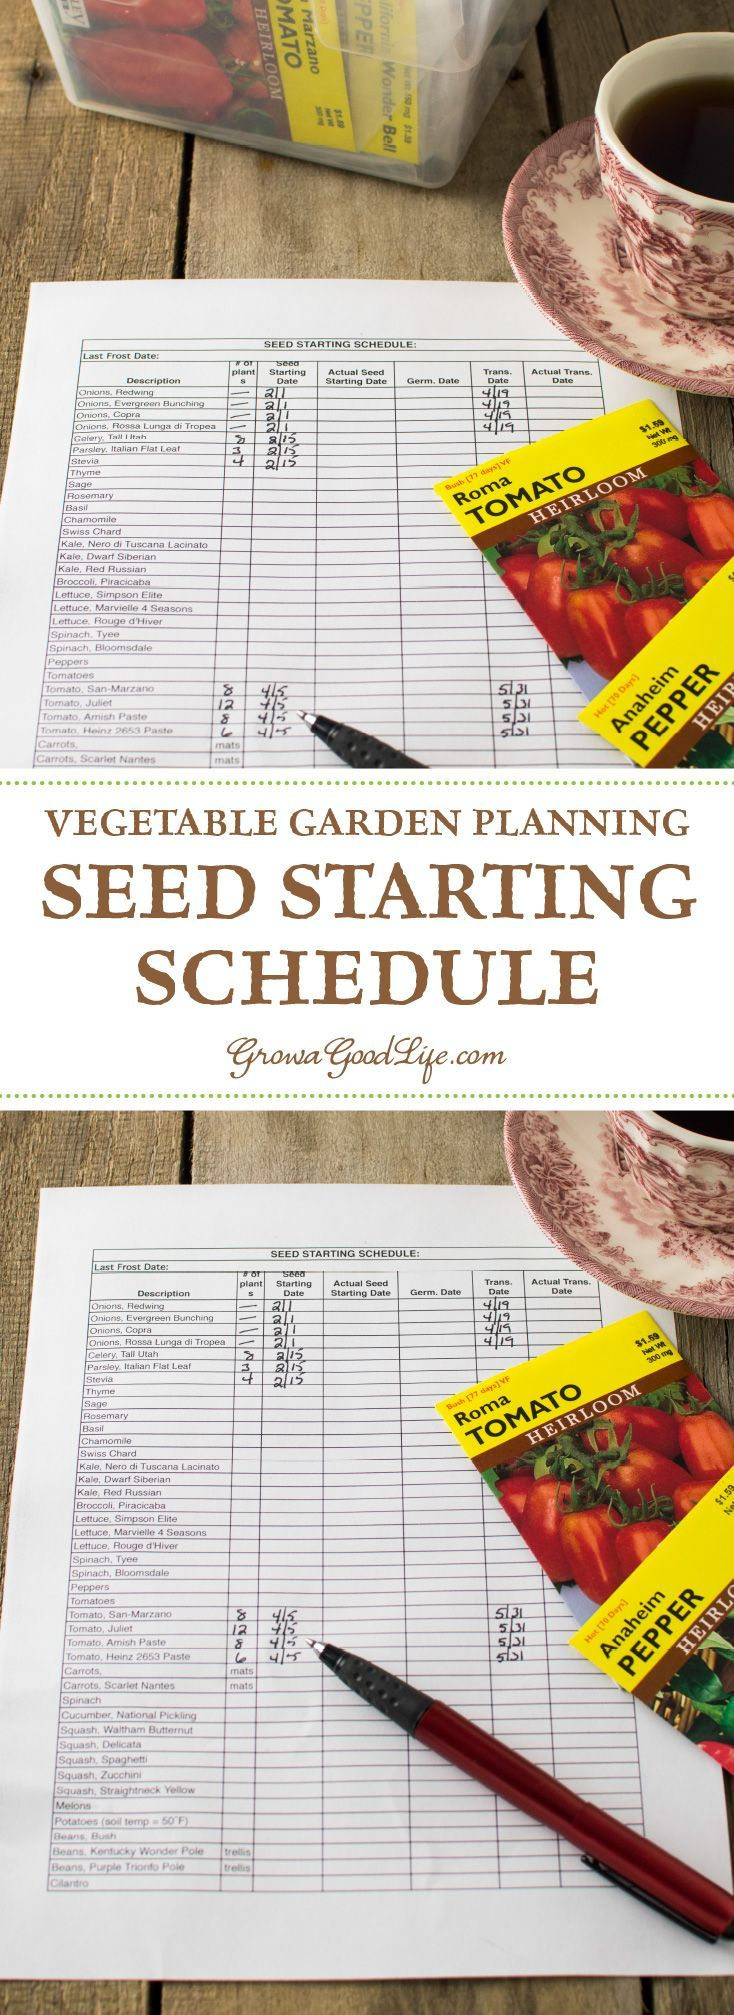 Planning Your Vegetable Garden: Seed Starting Schedule -  Developing a seed-starting schedule ahead of time makes it easy to know which seeds you should be s - #CompanionPlanting #garden #OrganicGardening #Permaculture #planning #schedule #Seed #SeedStarting #starting #vegetable